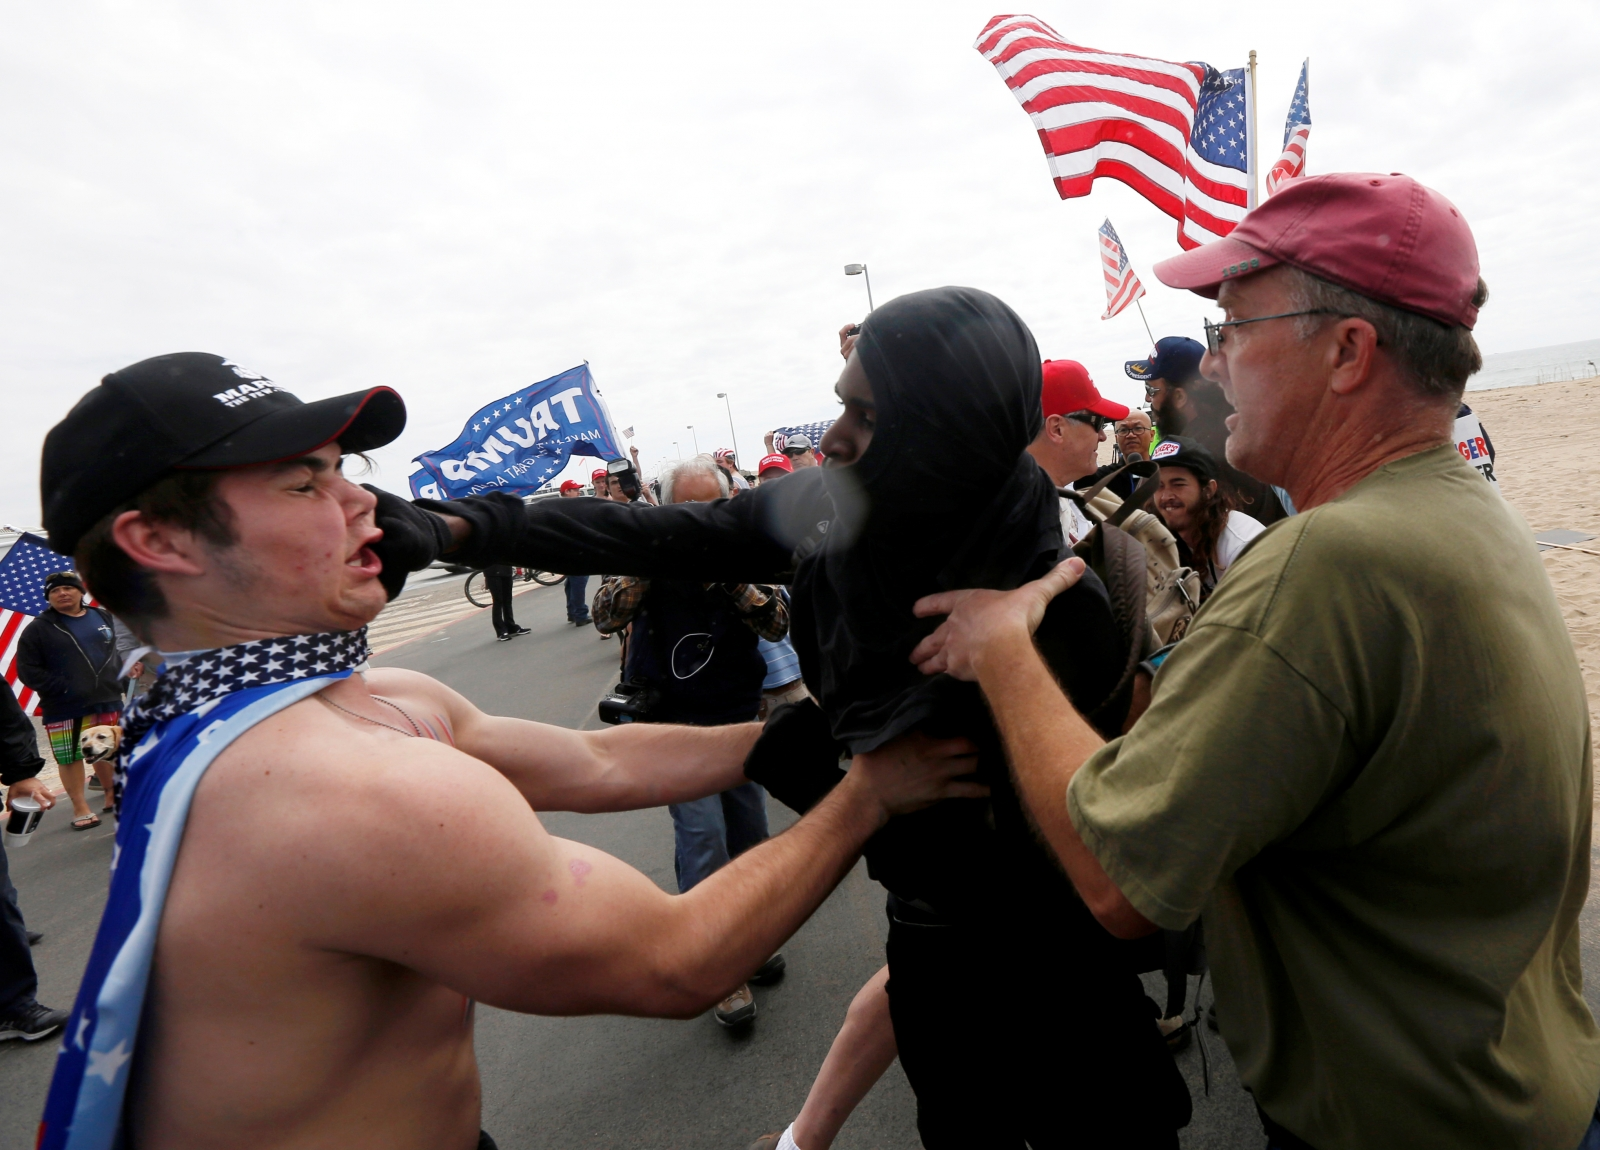 Violent Clashes In California After Pro Trump Rallies